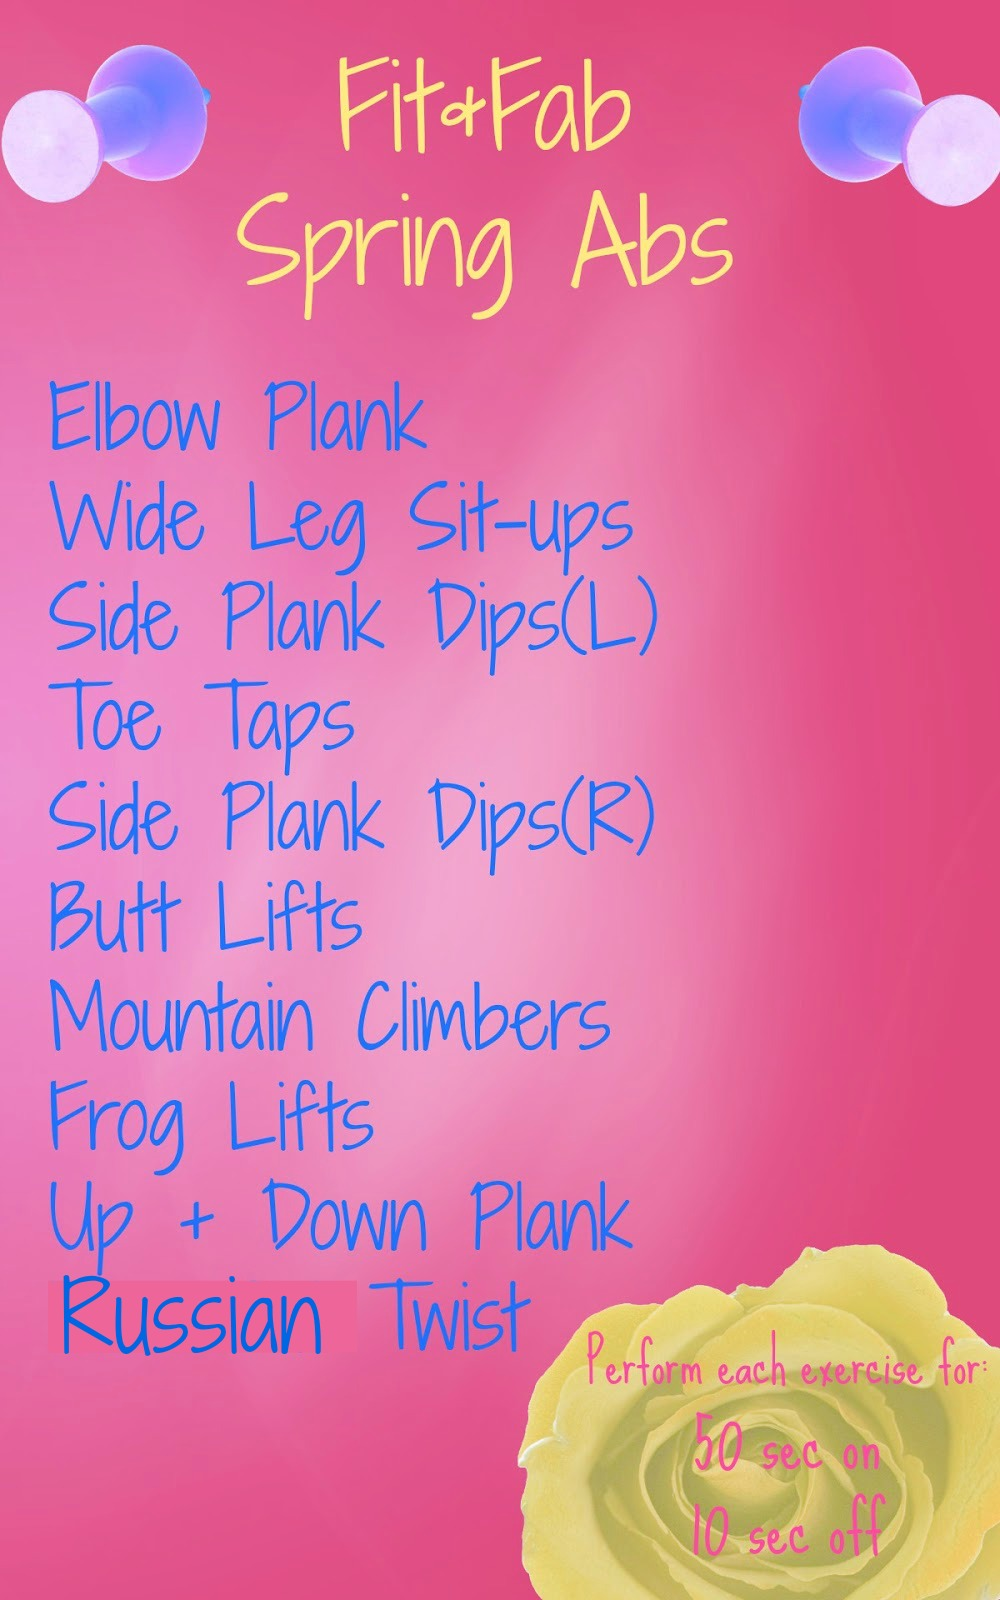 Fit Fab Spring Abs Workout